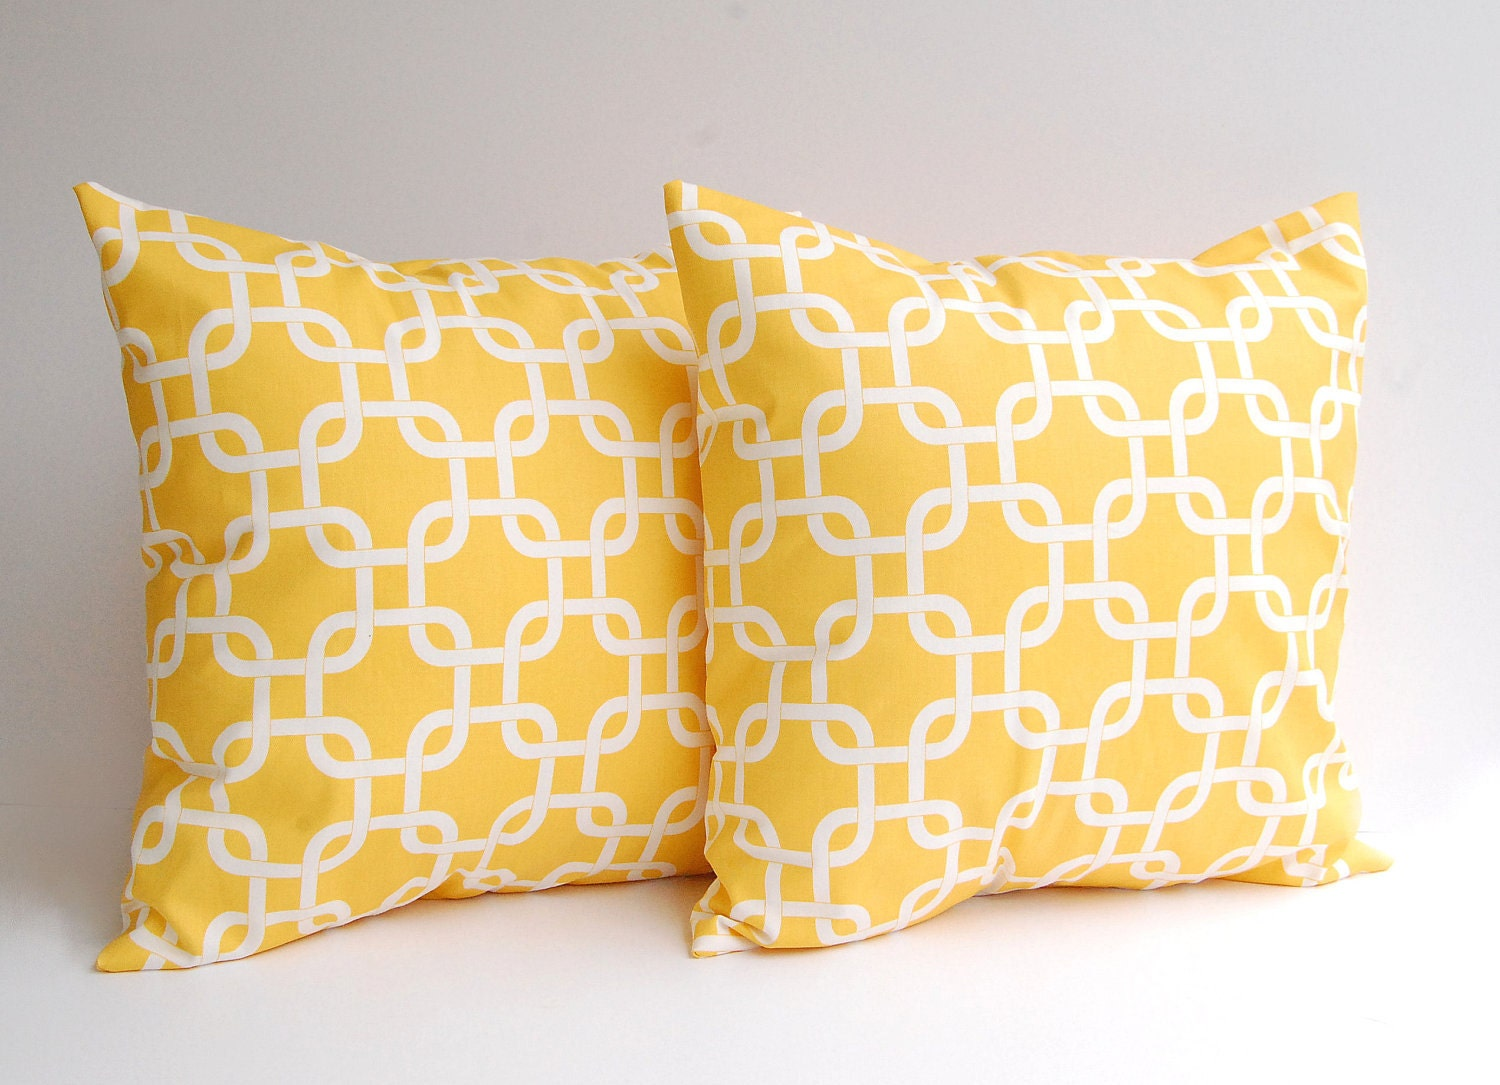 Throw Pillow Yellow : Yellow throw pillows set of two 18 x 18 inches by ThePillowPeople